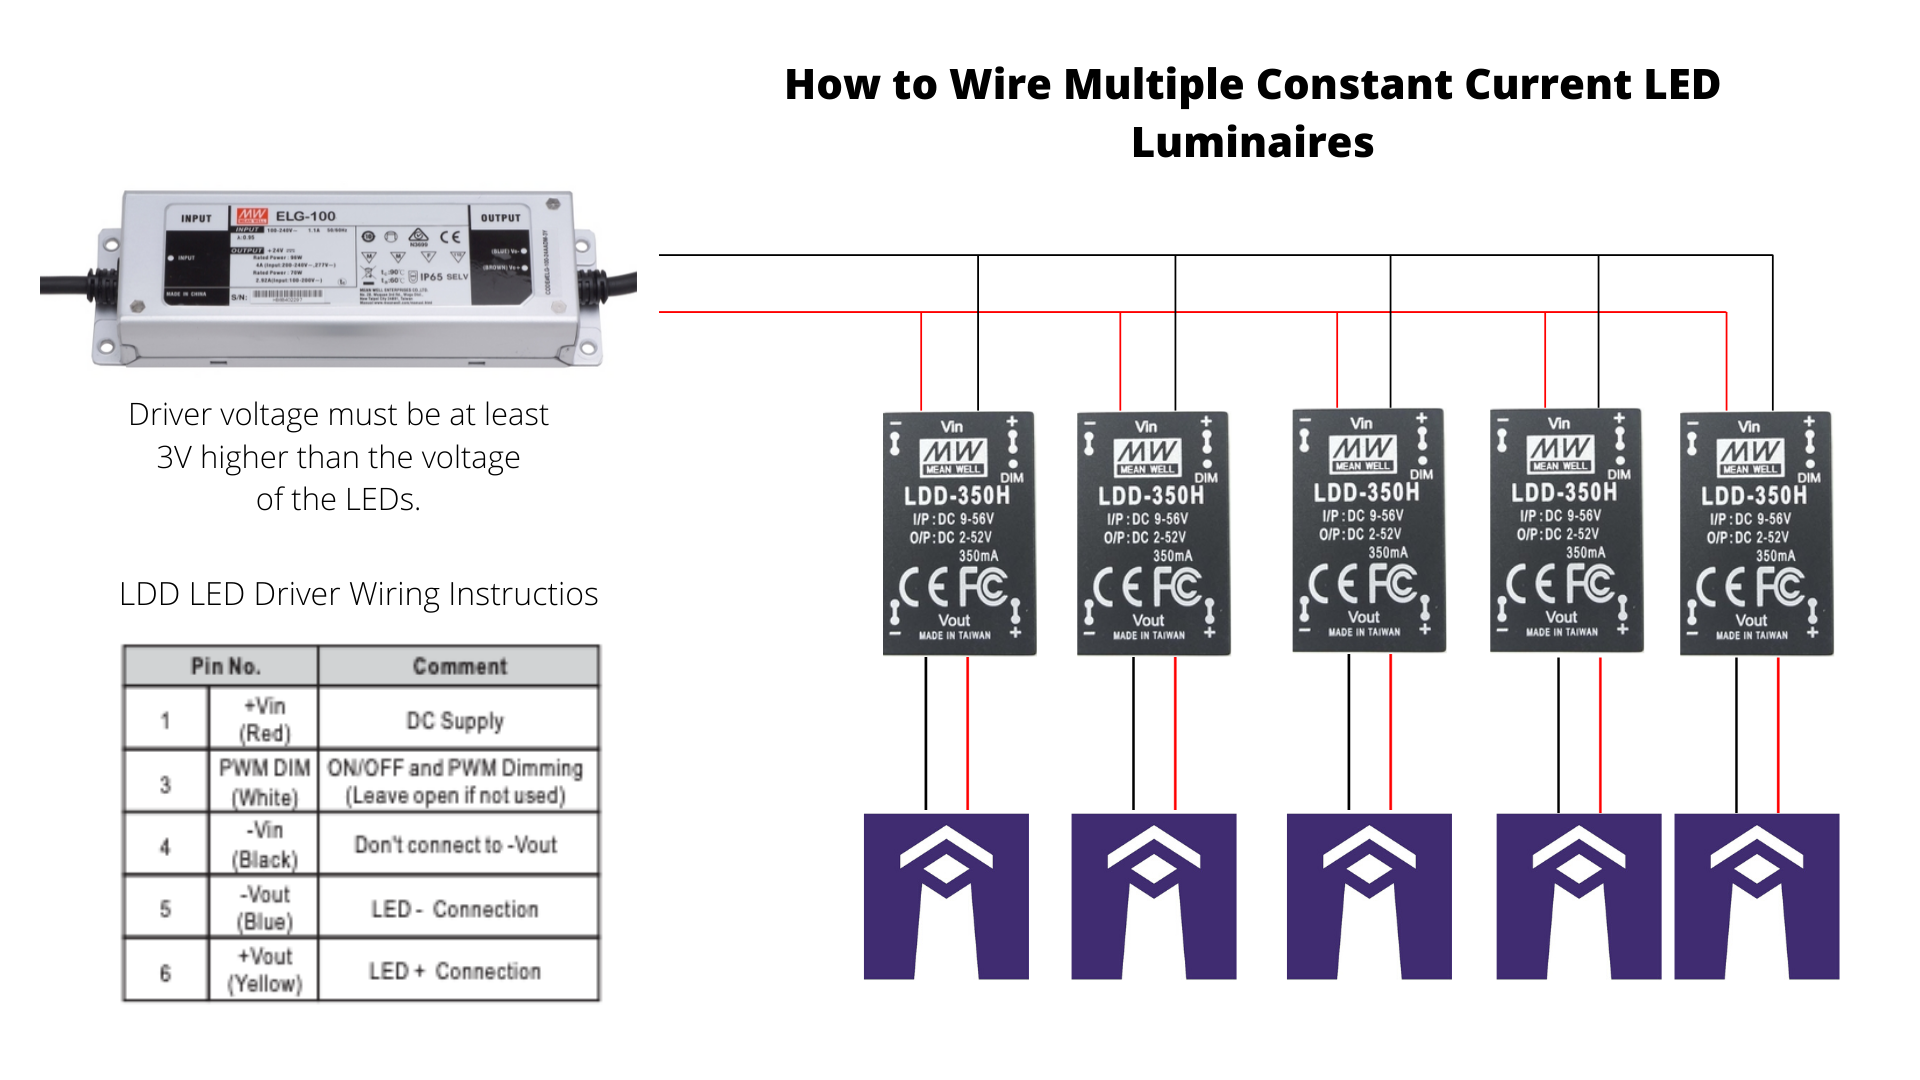 Low cost constant current LED driver installation